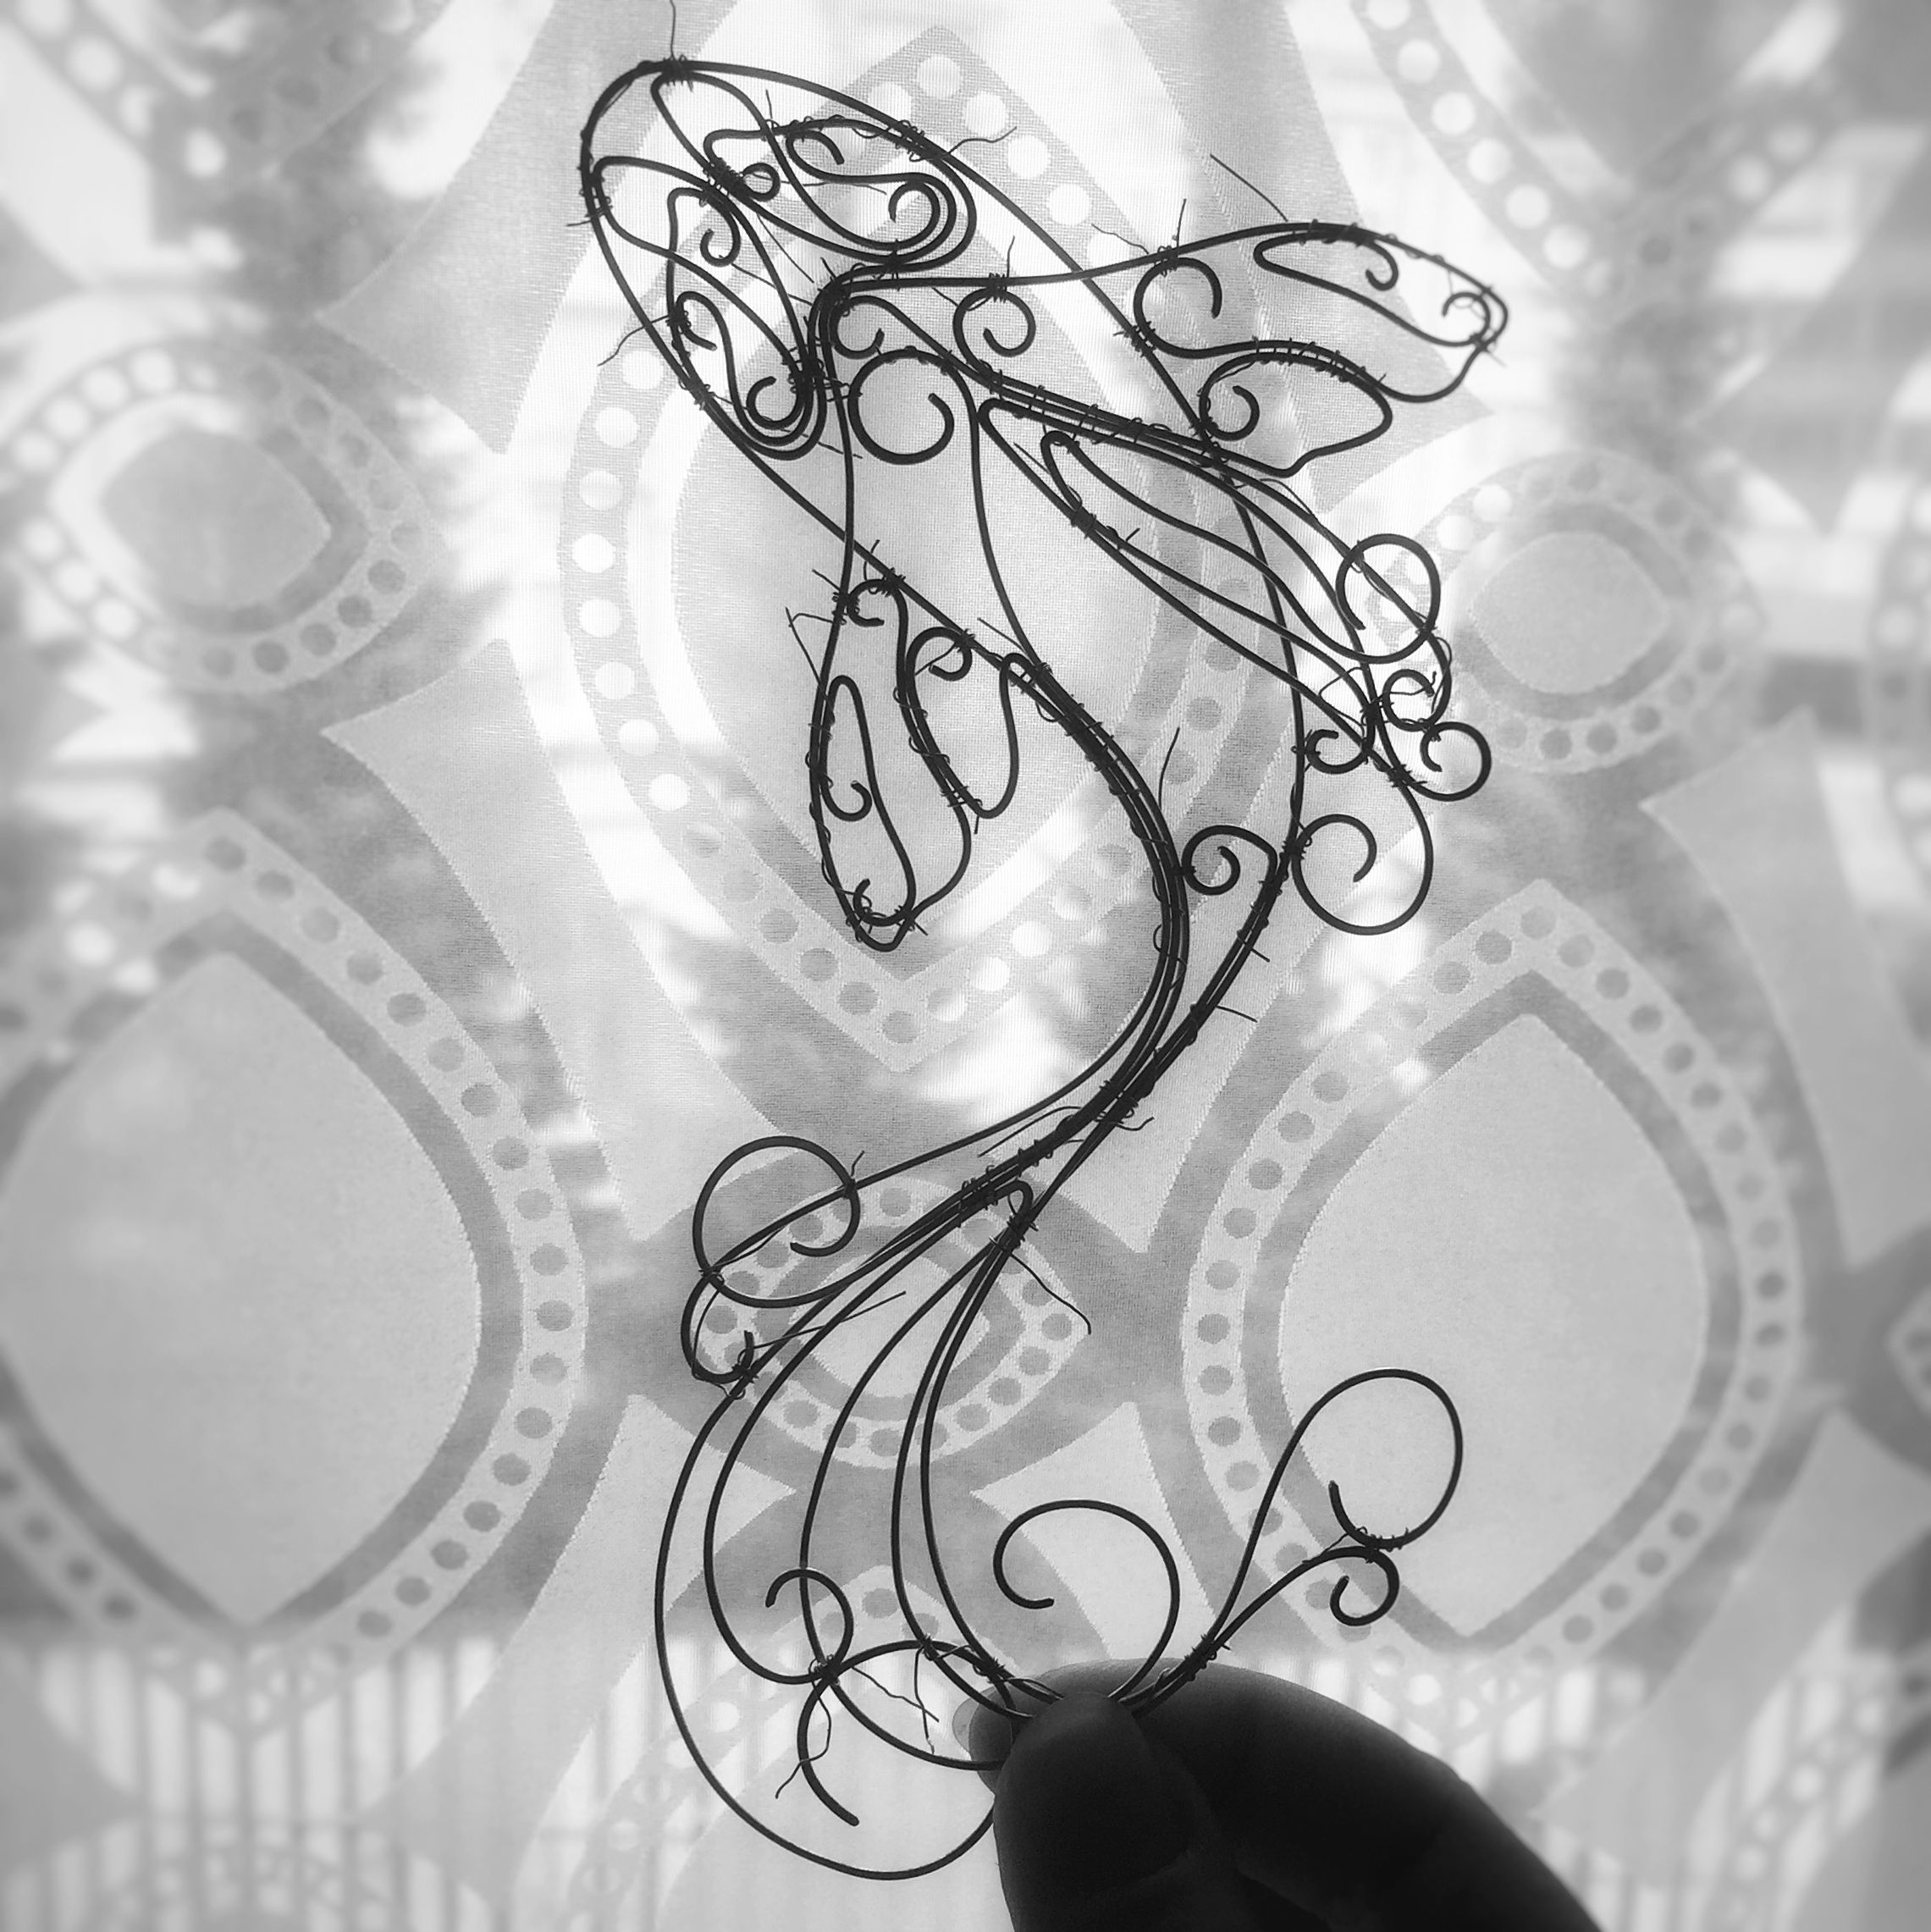 Wire art - koi fish in the process of making Instagram @springstring ...